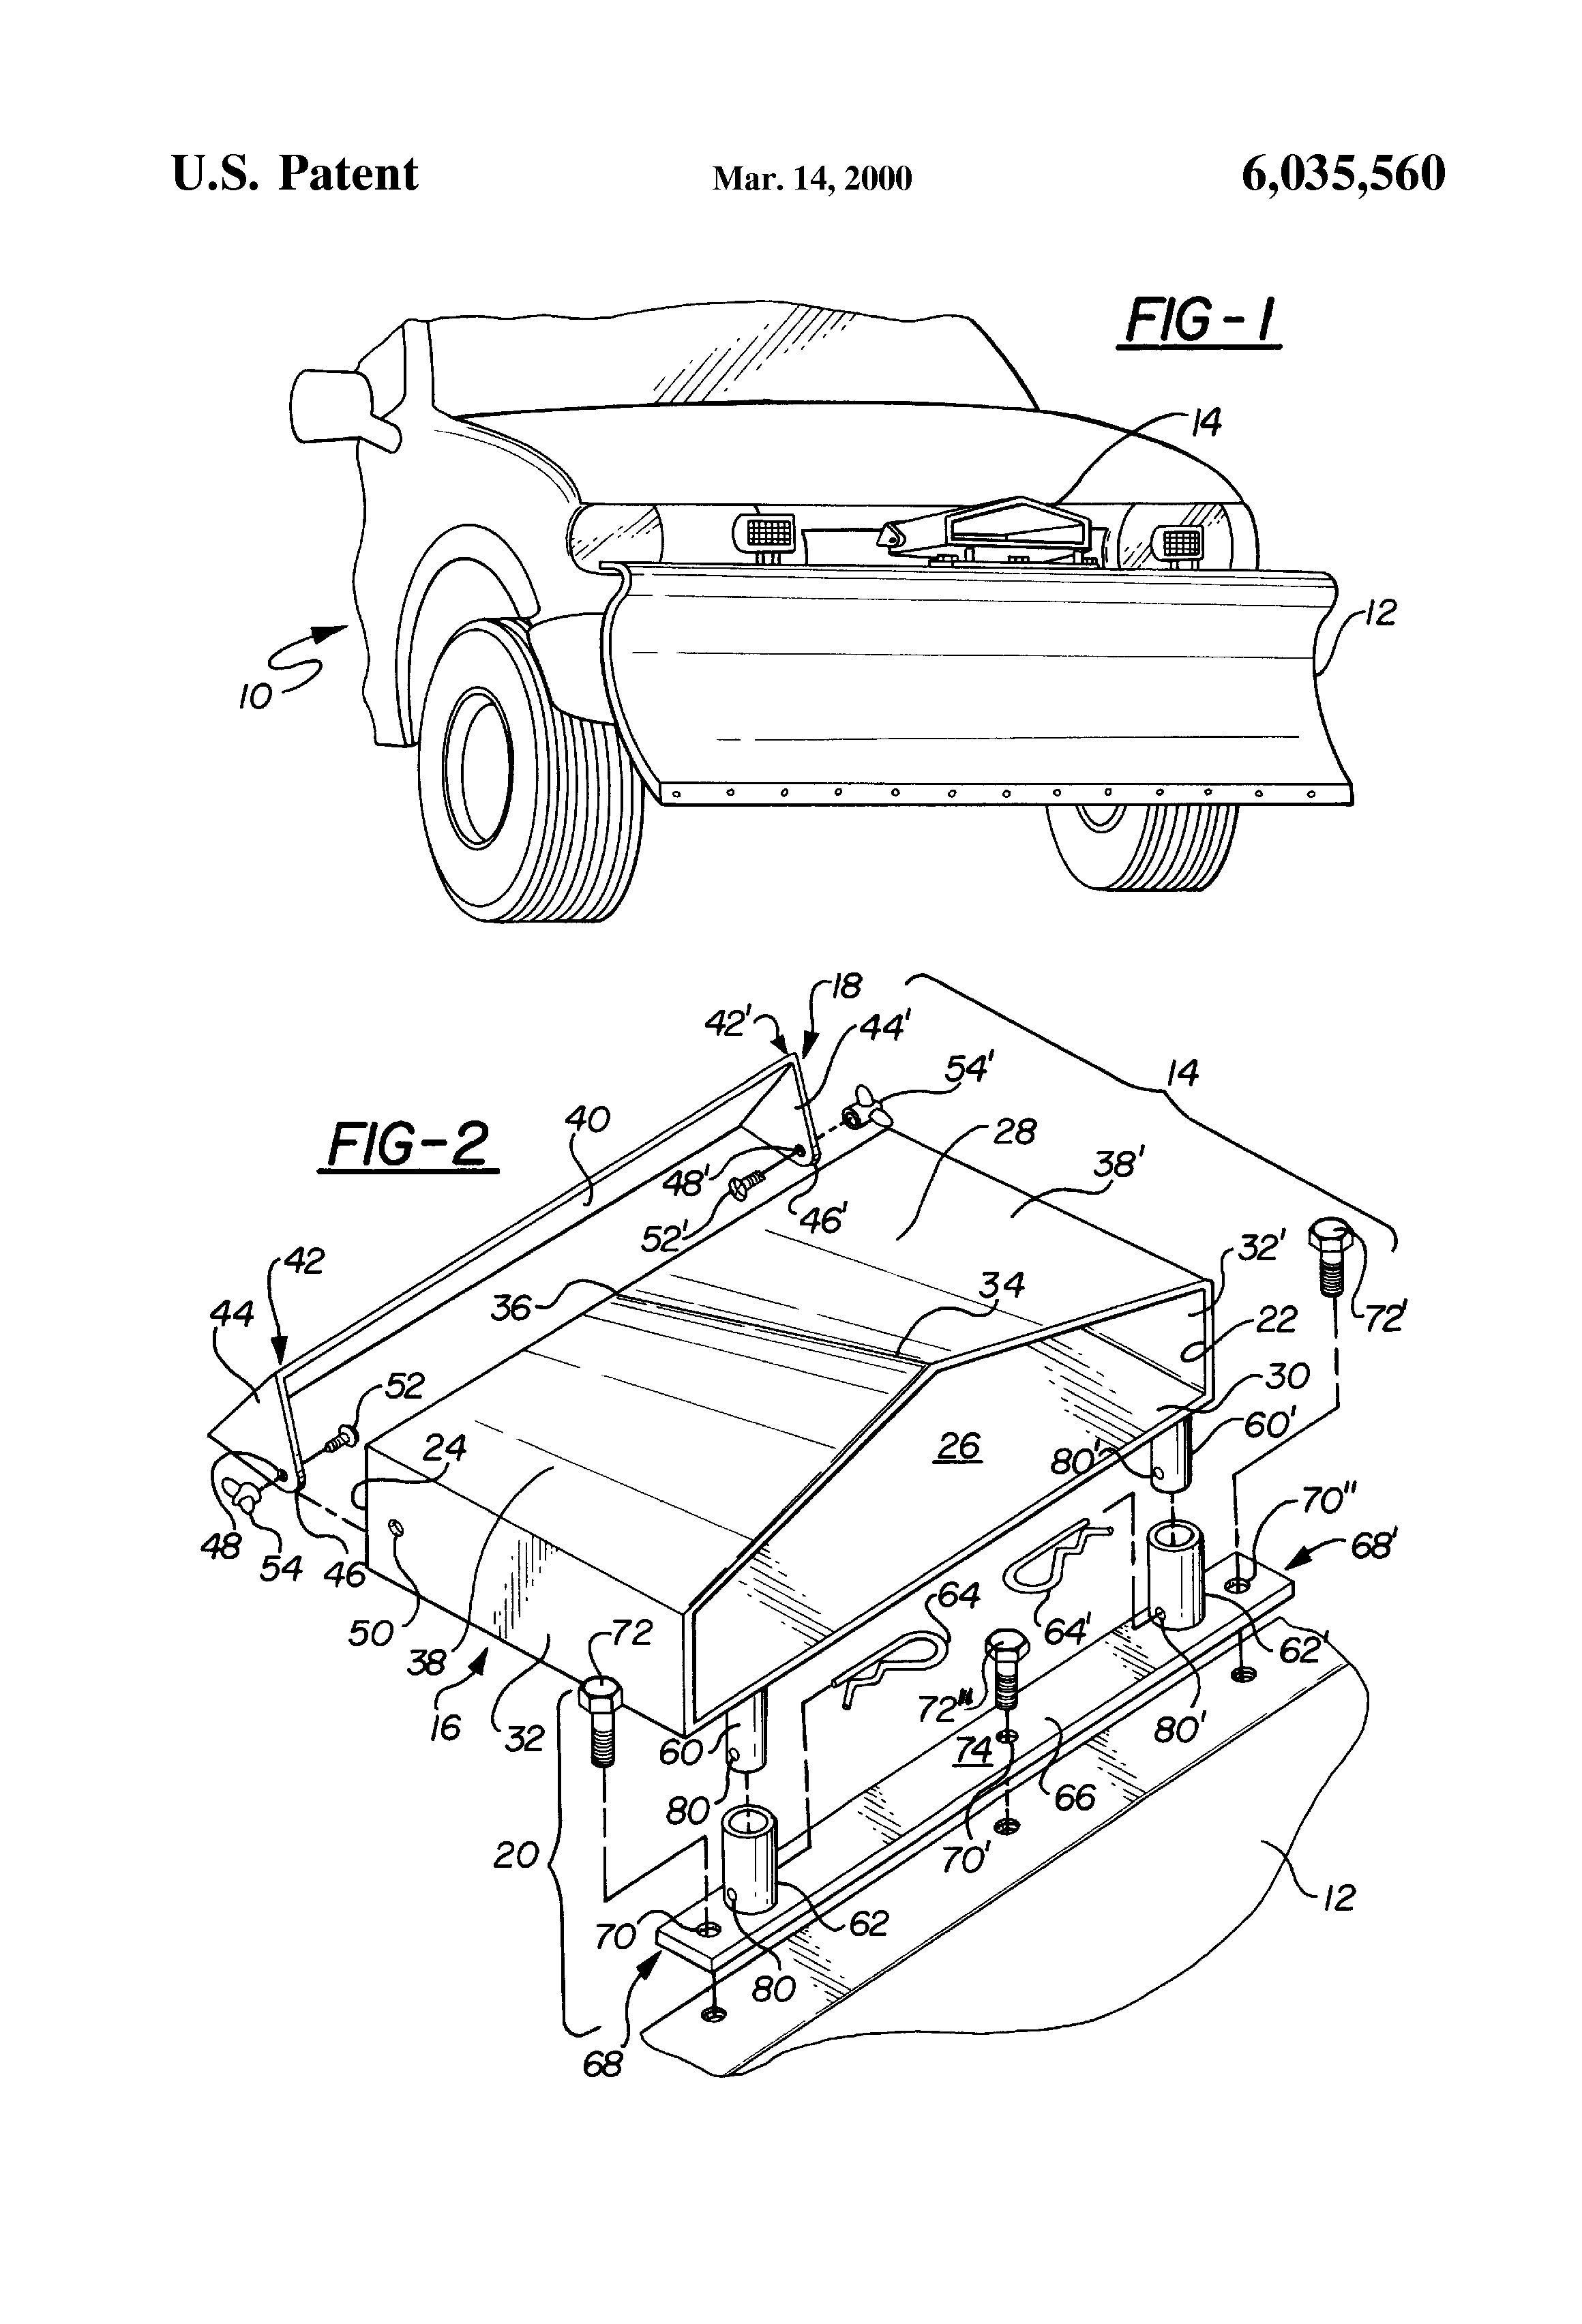 Snow Plow Air Intake : Patent us air deflector with adjustable louver